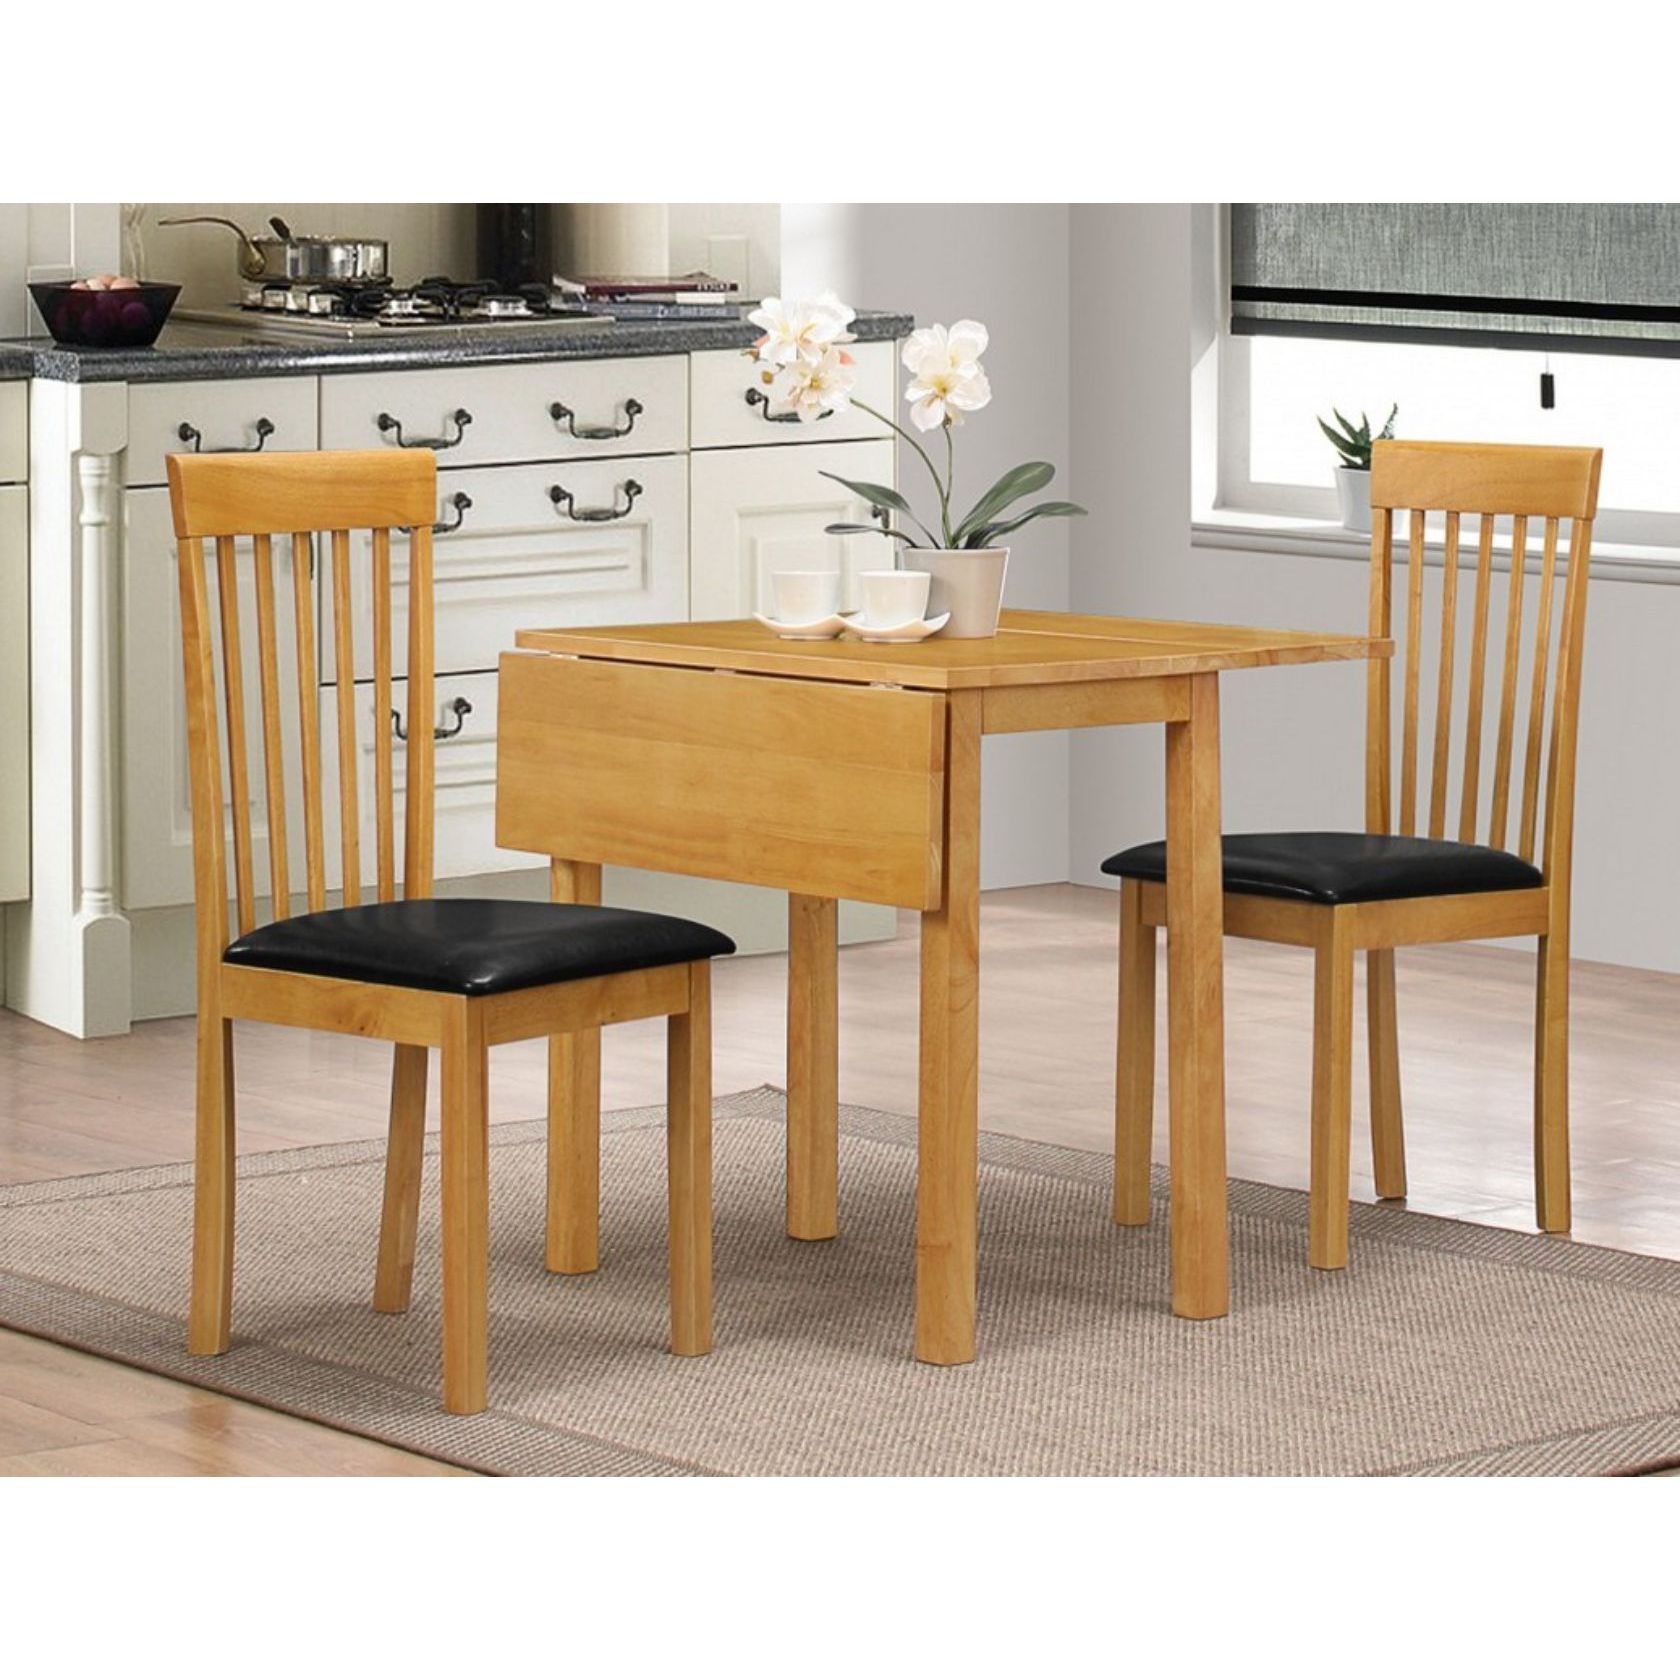 Atlas Drop Leaf Dining Table Set And 2 Chairs Oak Or Natural